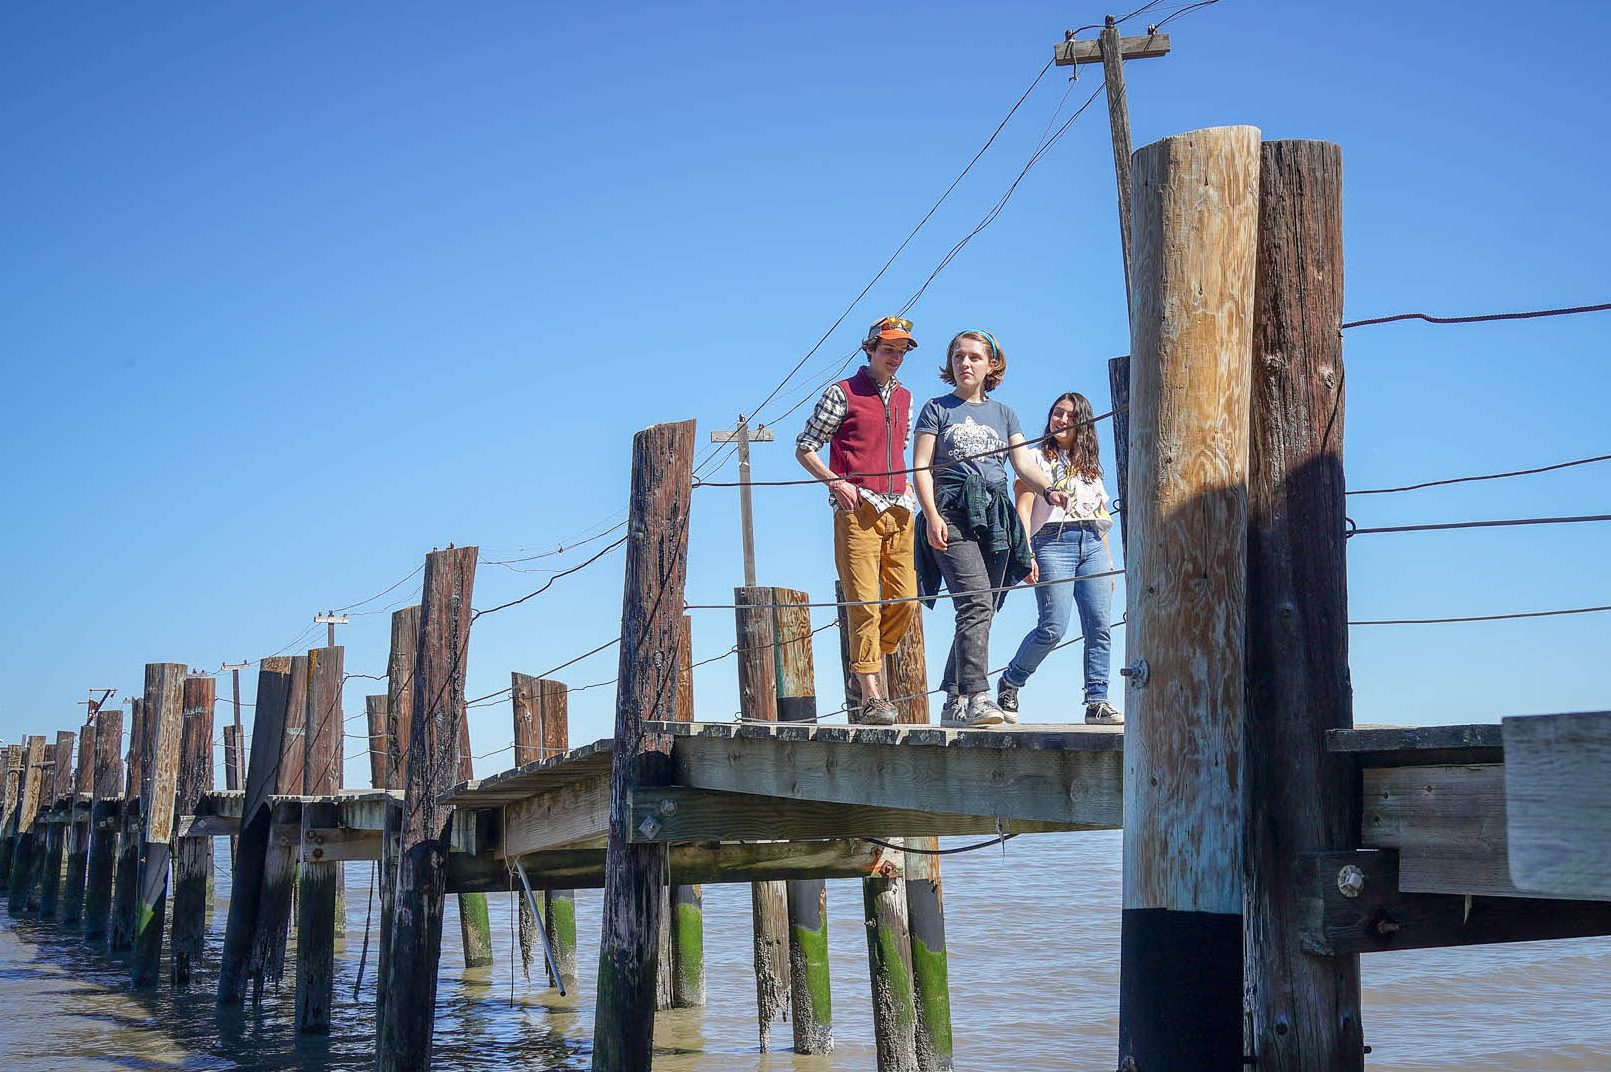 students walk along a dock